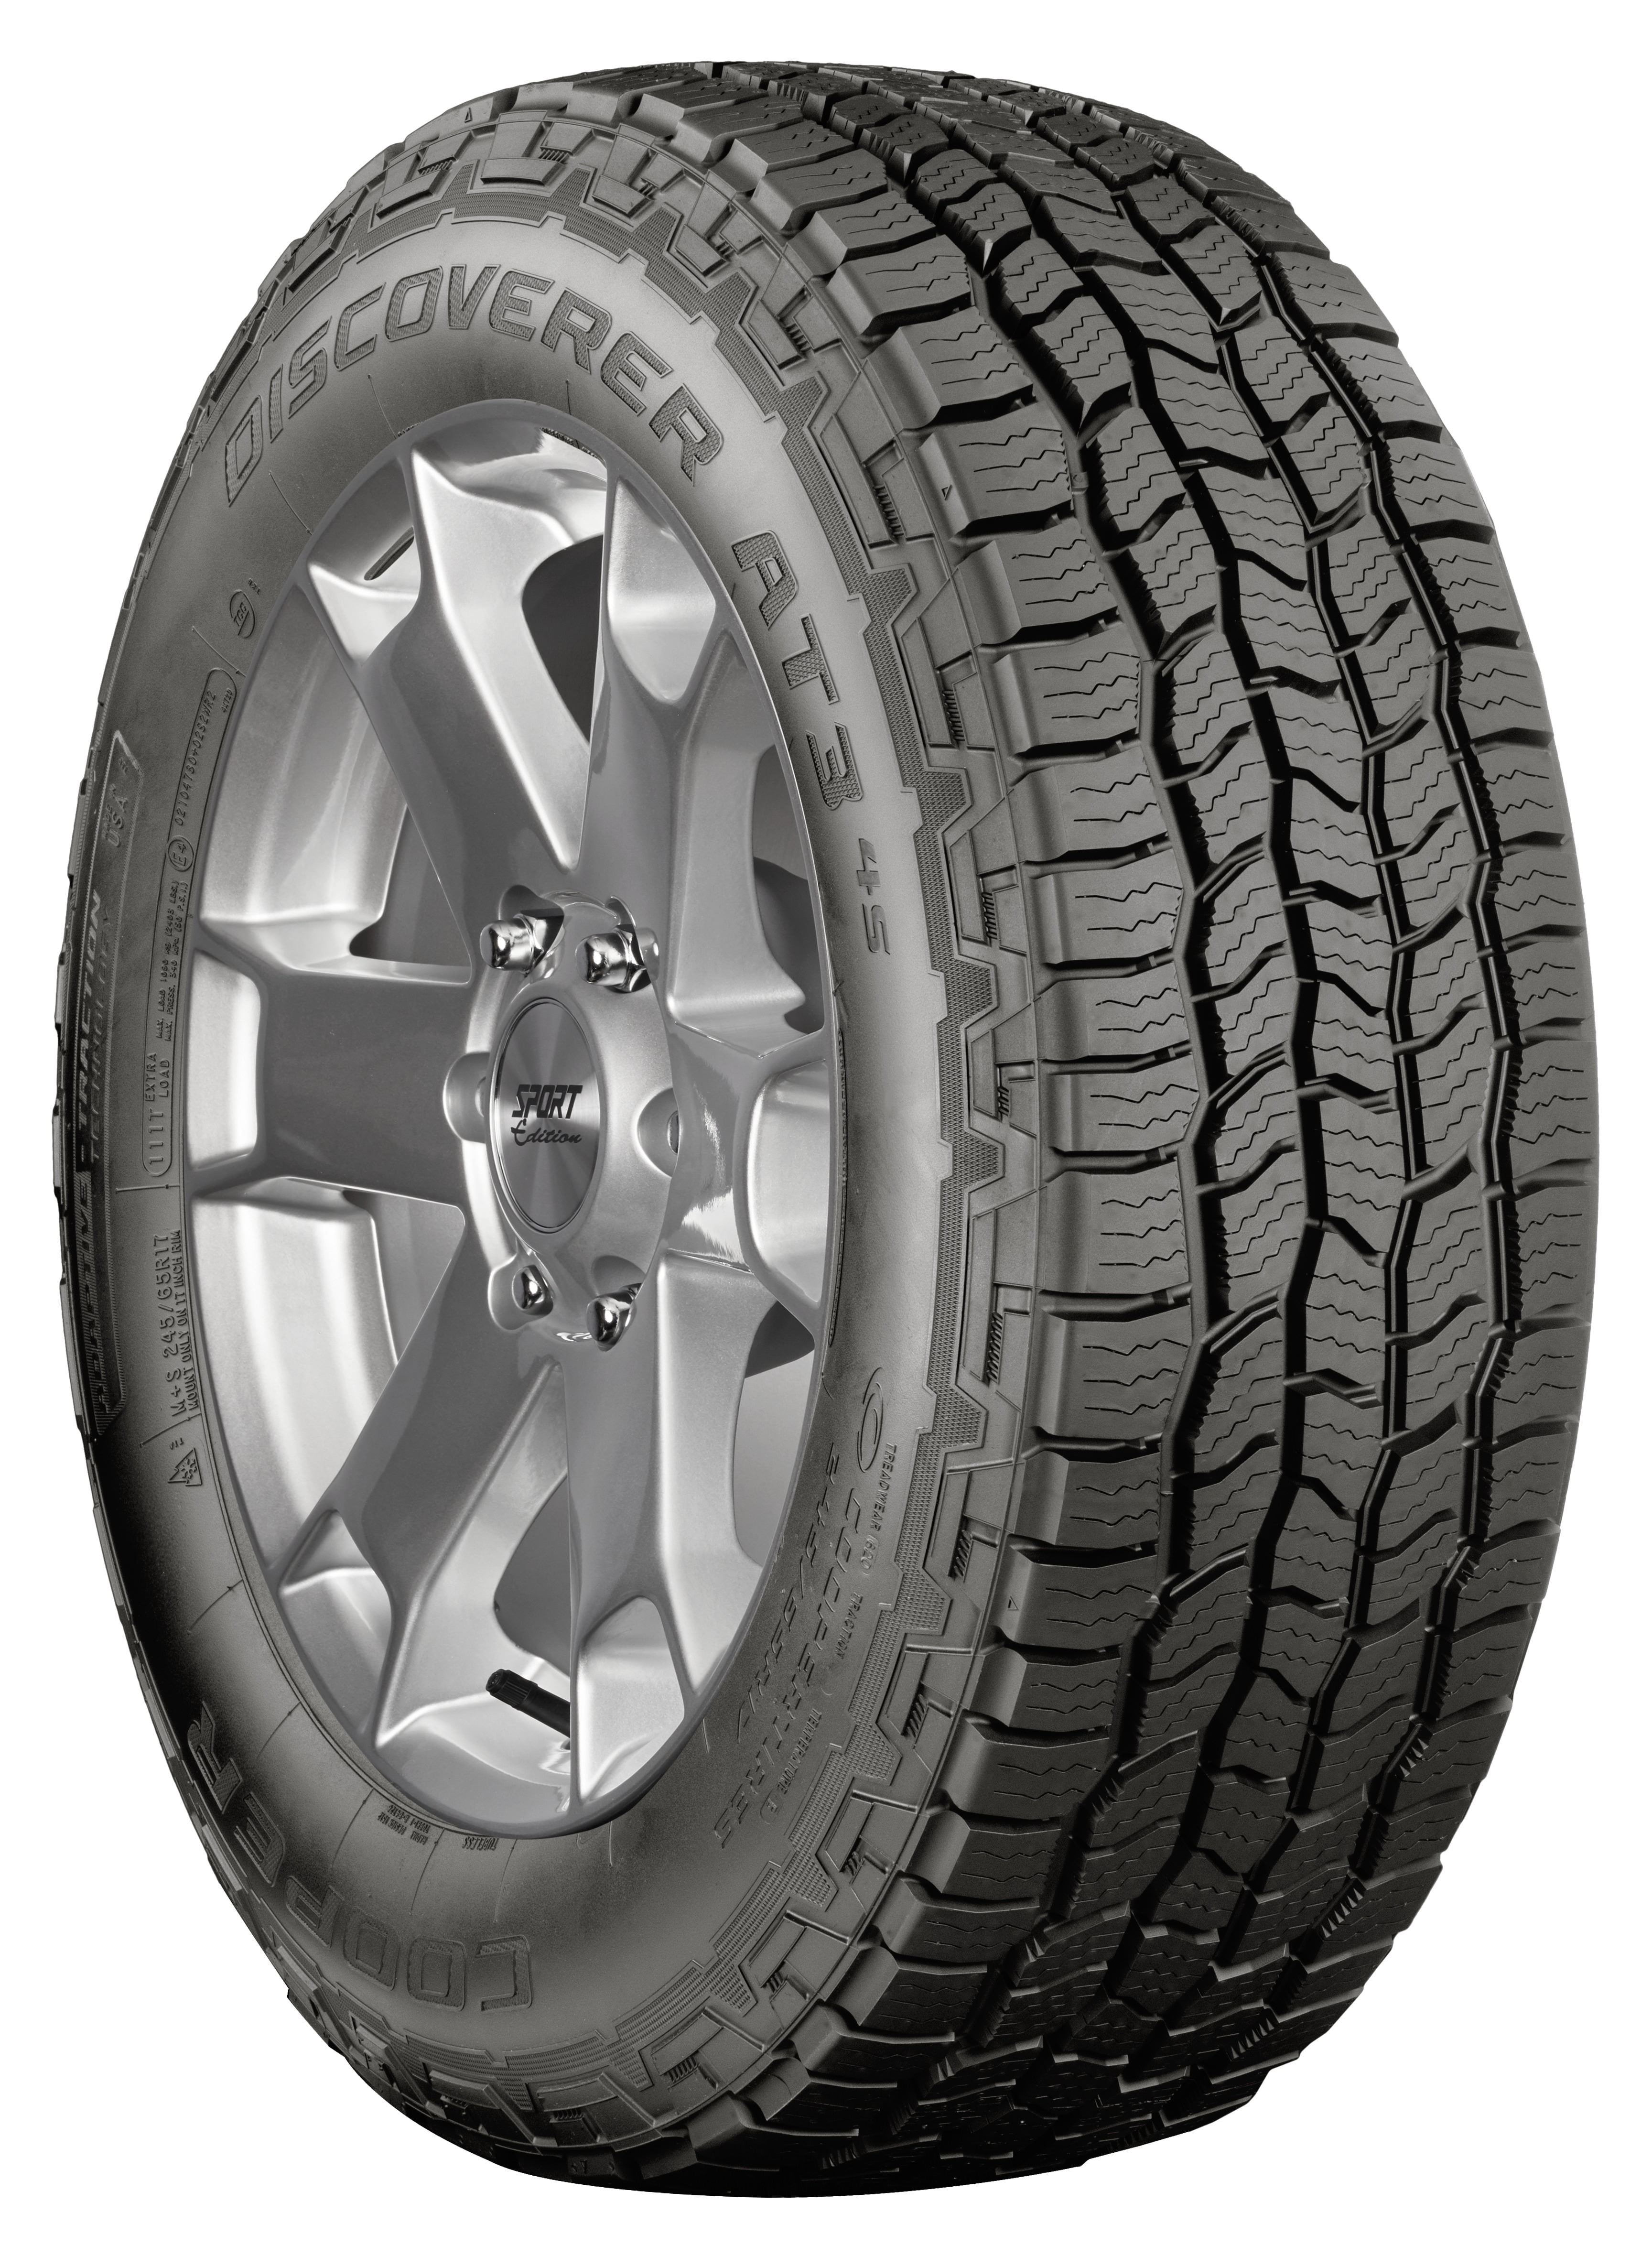 Cooper DISCOVERER AT3 4S 275 60R20 115T Tire Walmart